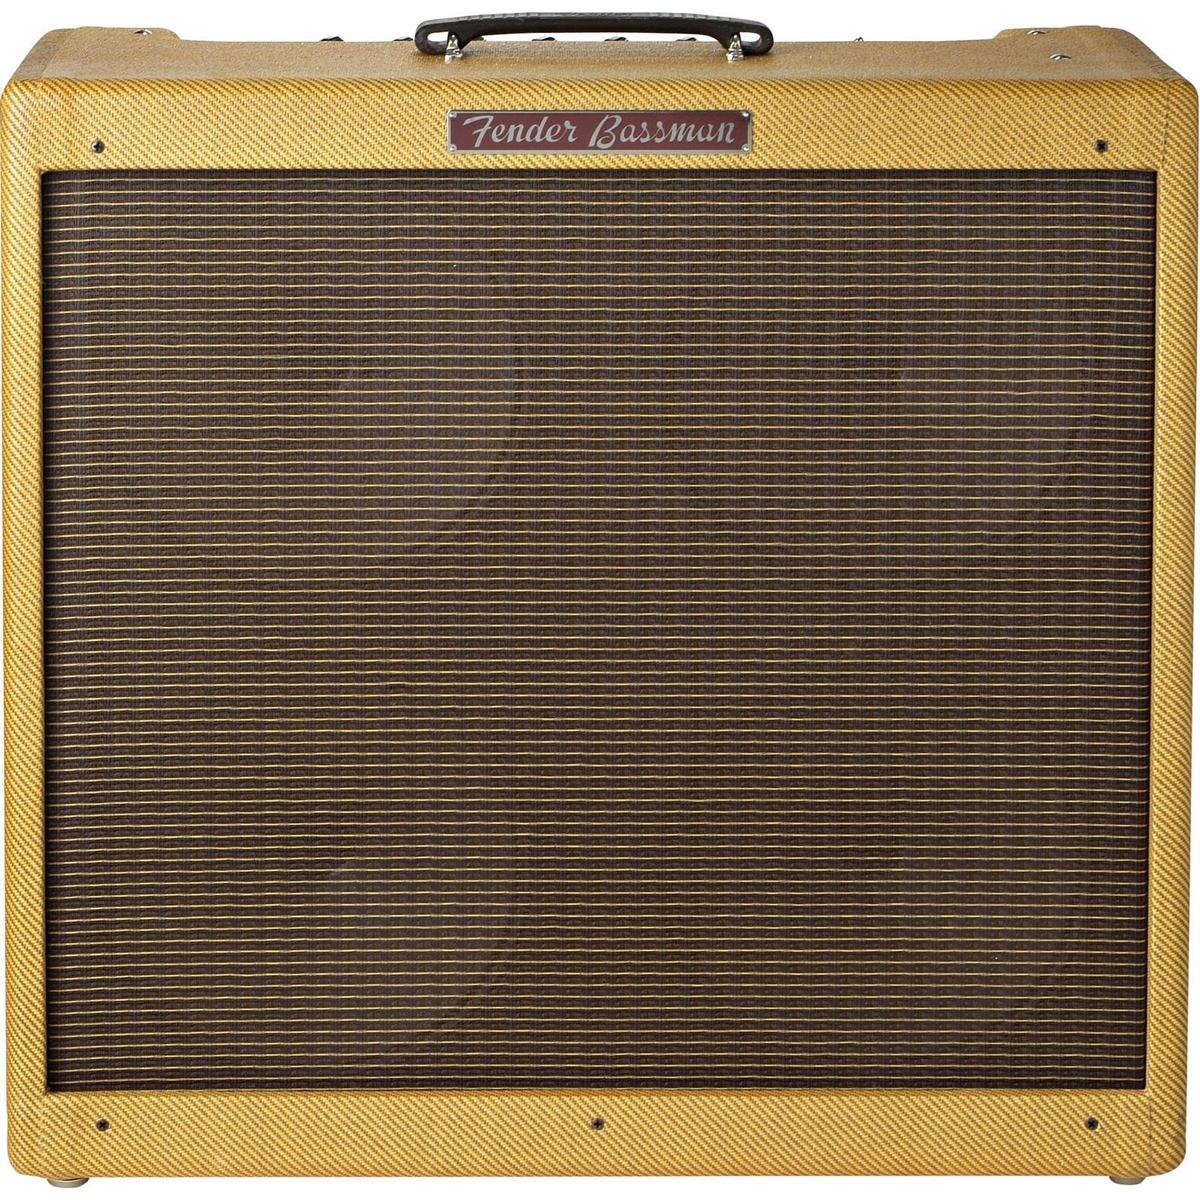 FENDER 59 BASSMAN VINTAGE REISSUE LAQUERED TWEED AMPLI - 2171006010